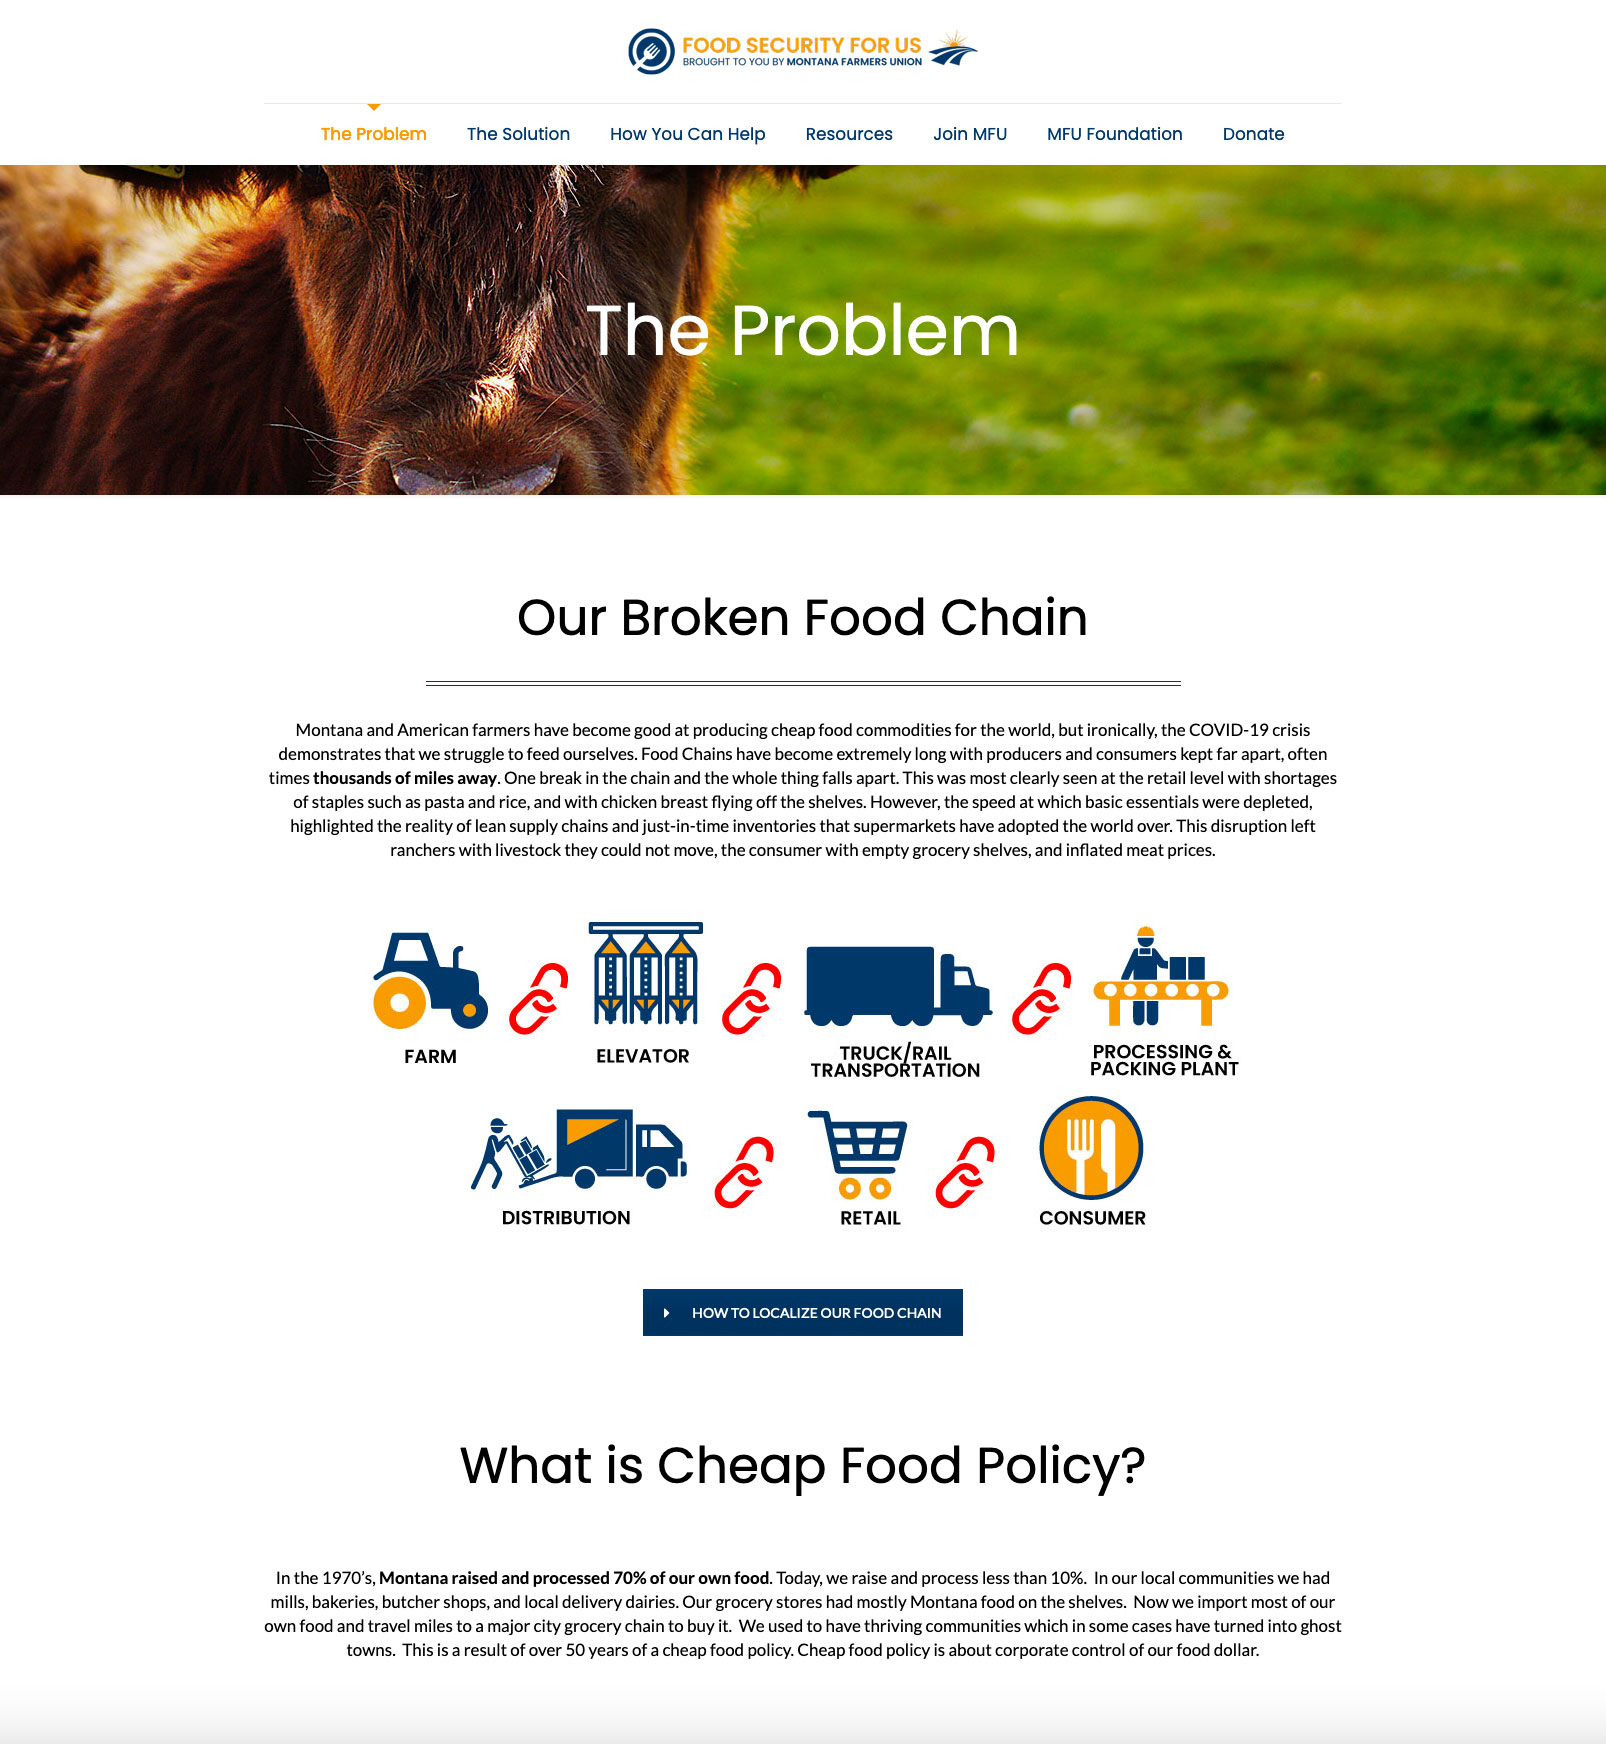 MFU Food Security for Us the problem web page